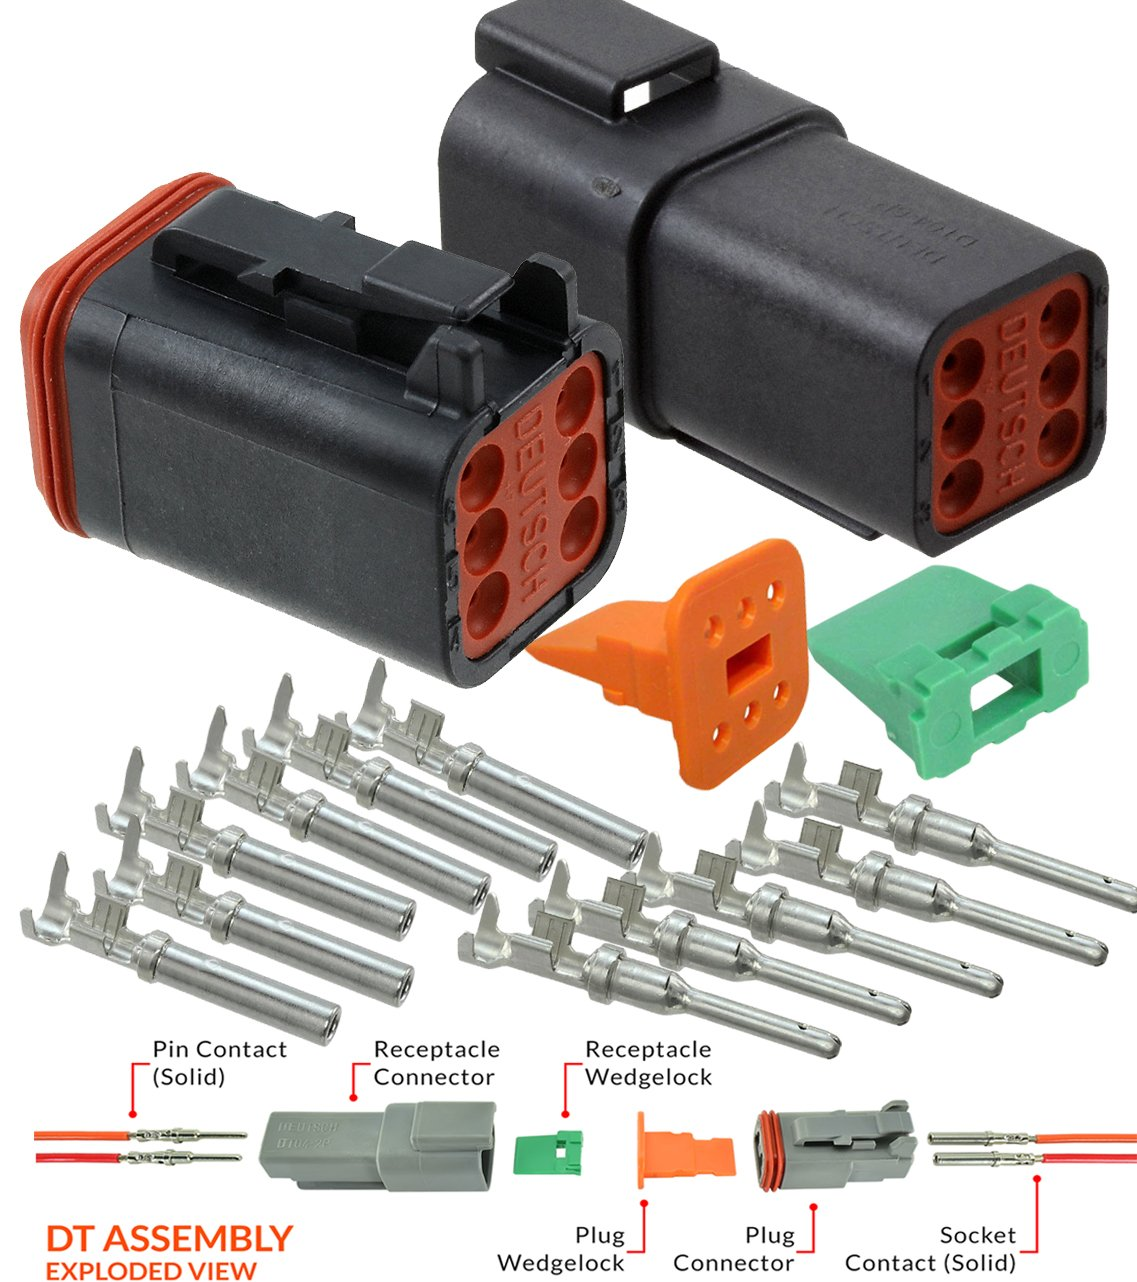 mm Recommended Insulation O.D 3 Completed Set Range: 2.41-3.81 Connector Kit with Housing Pins /& Seals Crimp Style Terminals 14-16 Gauge Deutsch 2-Pin